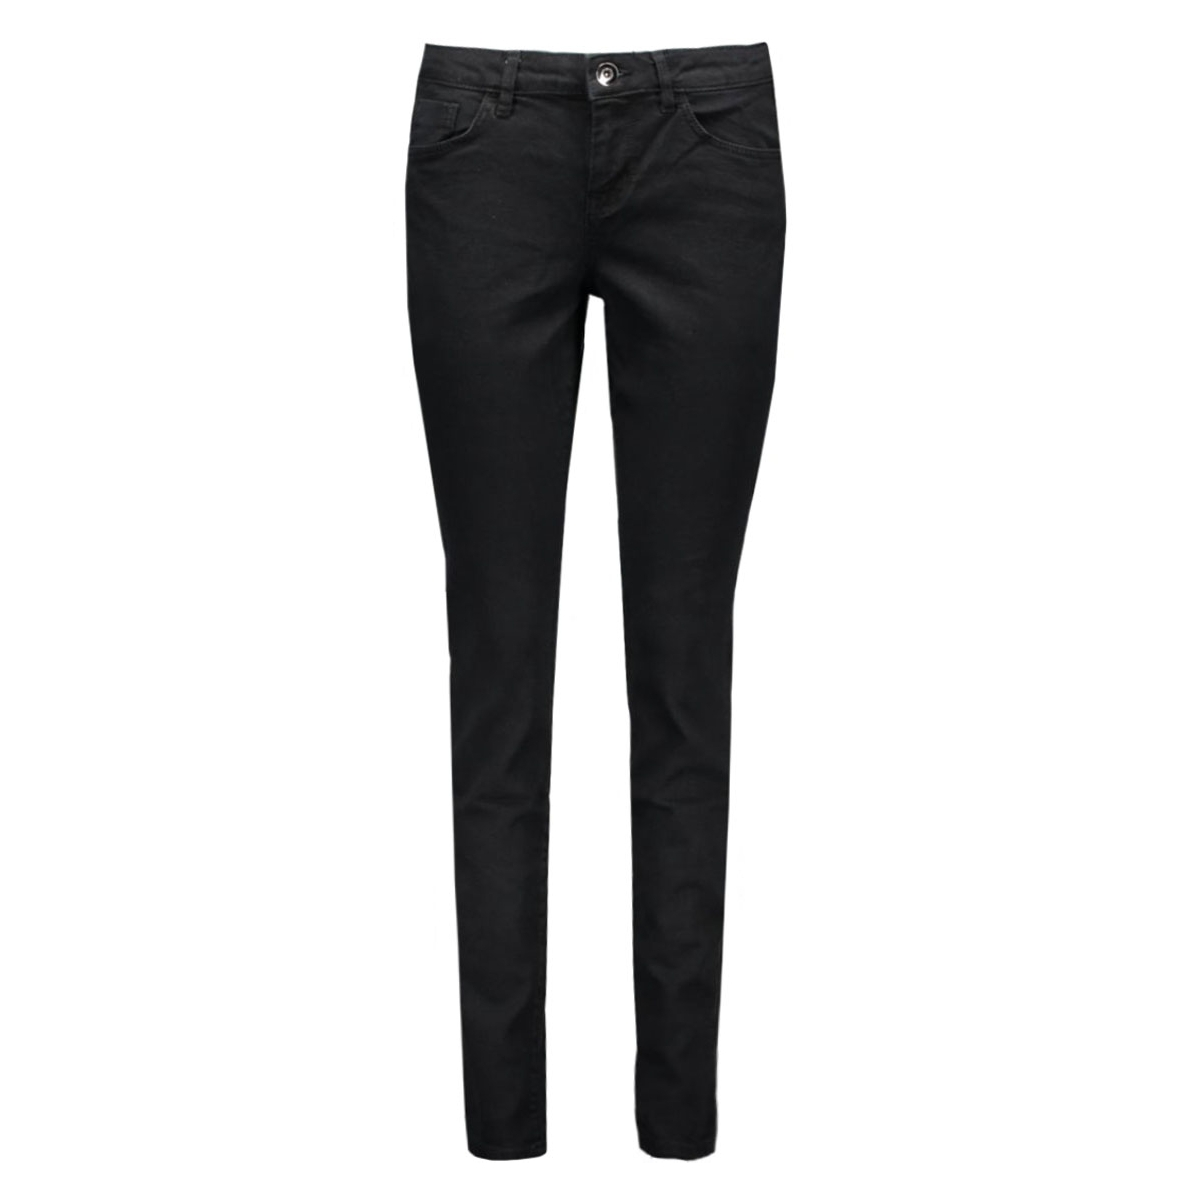 6204918.09.75 tom tailor jeans 1056